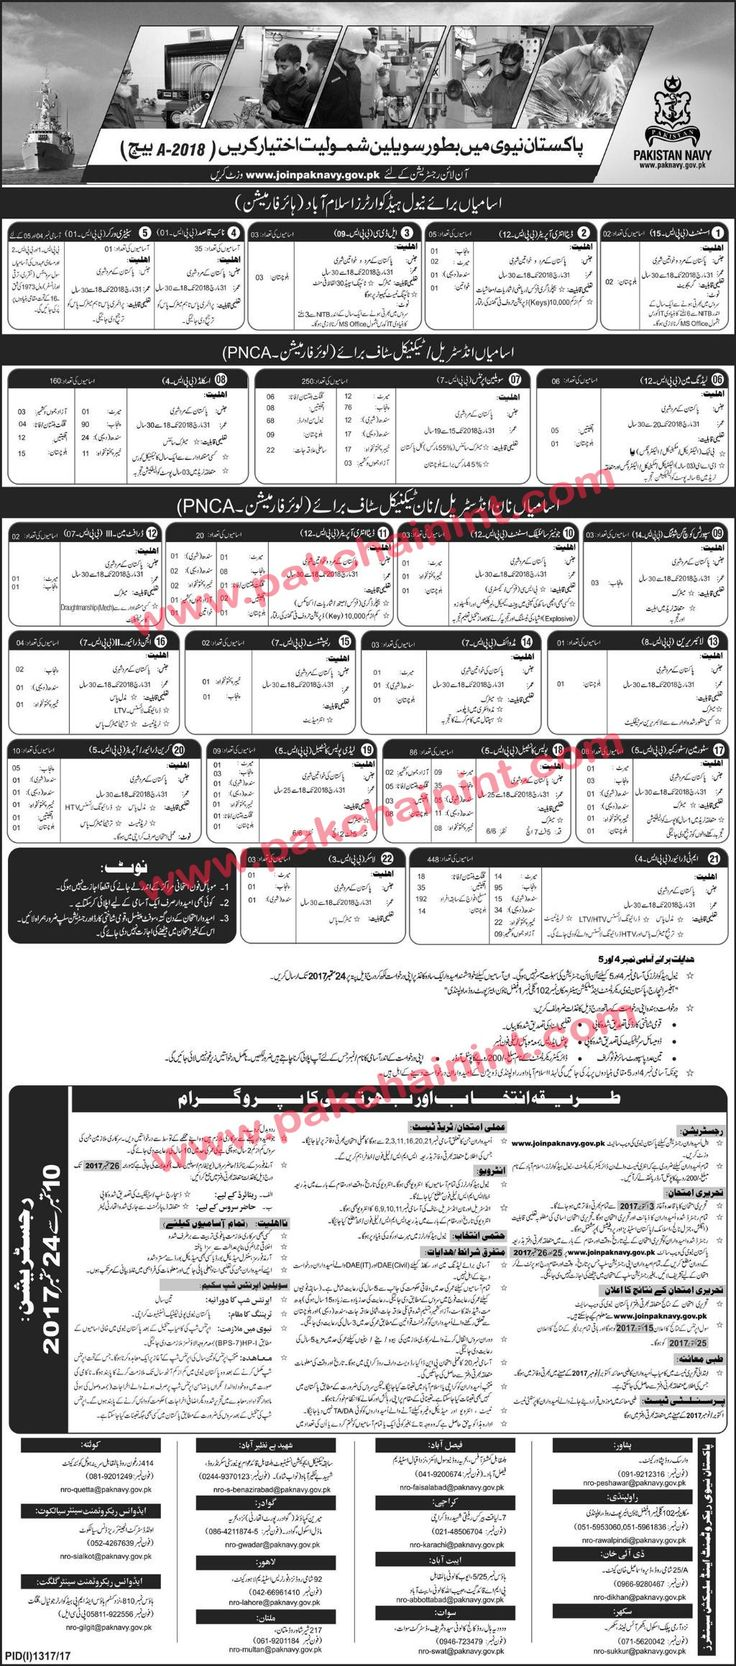 """Join Pakistan Navy As Civilian Detail Vacancies For Navel HQ Islamabad (Higher Formation) Assistant (BPS-15) """"2 Vacancies""""  Data Entry Operator (BPS-12) """"5Vacancies""""  Naib Qasid (BPS-01) """"3 Vacancies""""  Cleaner (BPS-01)  Vacancies Industrial Technical Staff for Lower formation  Leading Man (BPS-12) """"6Vacancies""""  Civilian Apprentice (BPS-7)  Skilled Grade (BPS-4) 160  Vacancies Non Industri   #Batch 2018 #jobs as a Civilian #Latest Advertisement"""